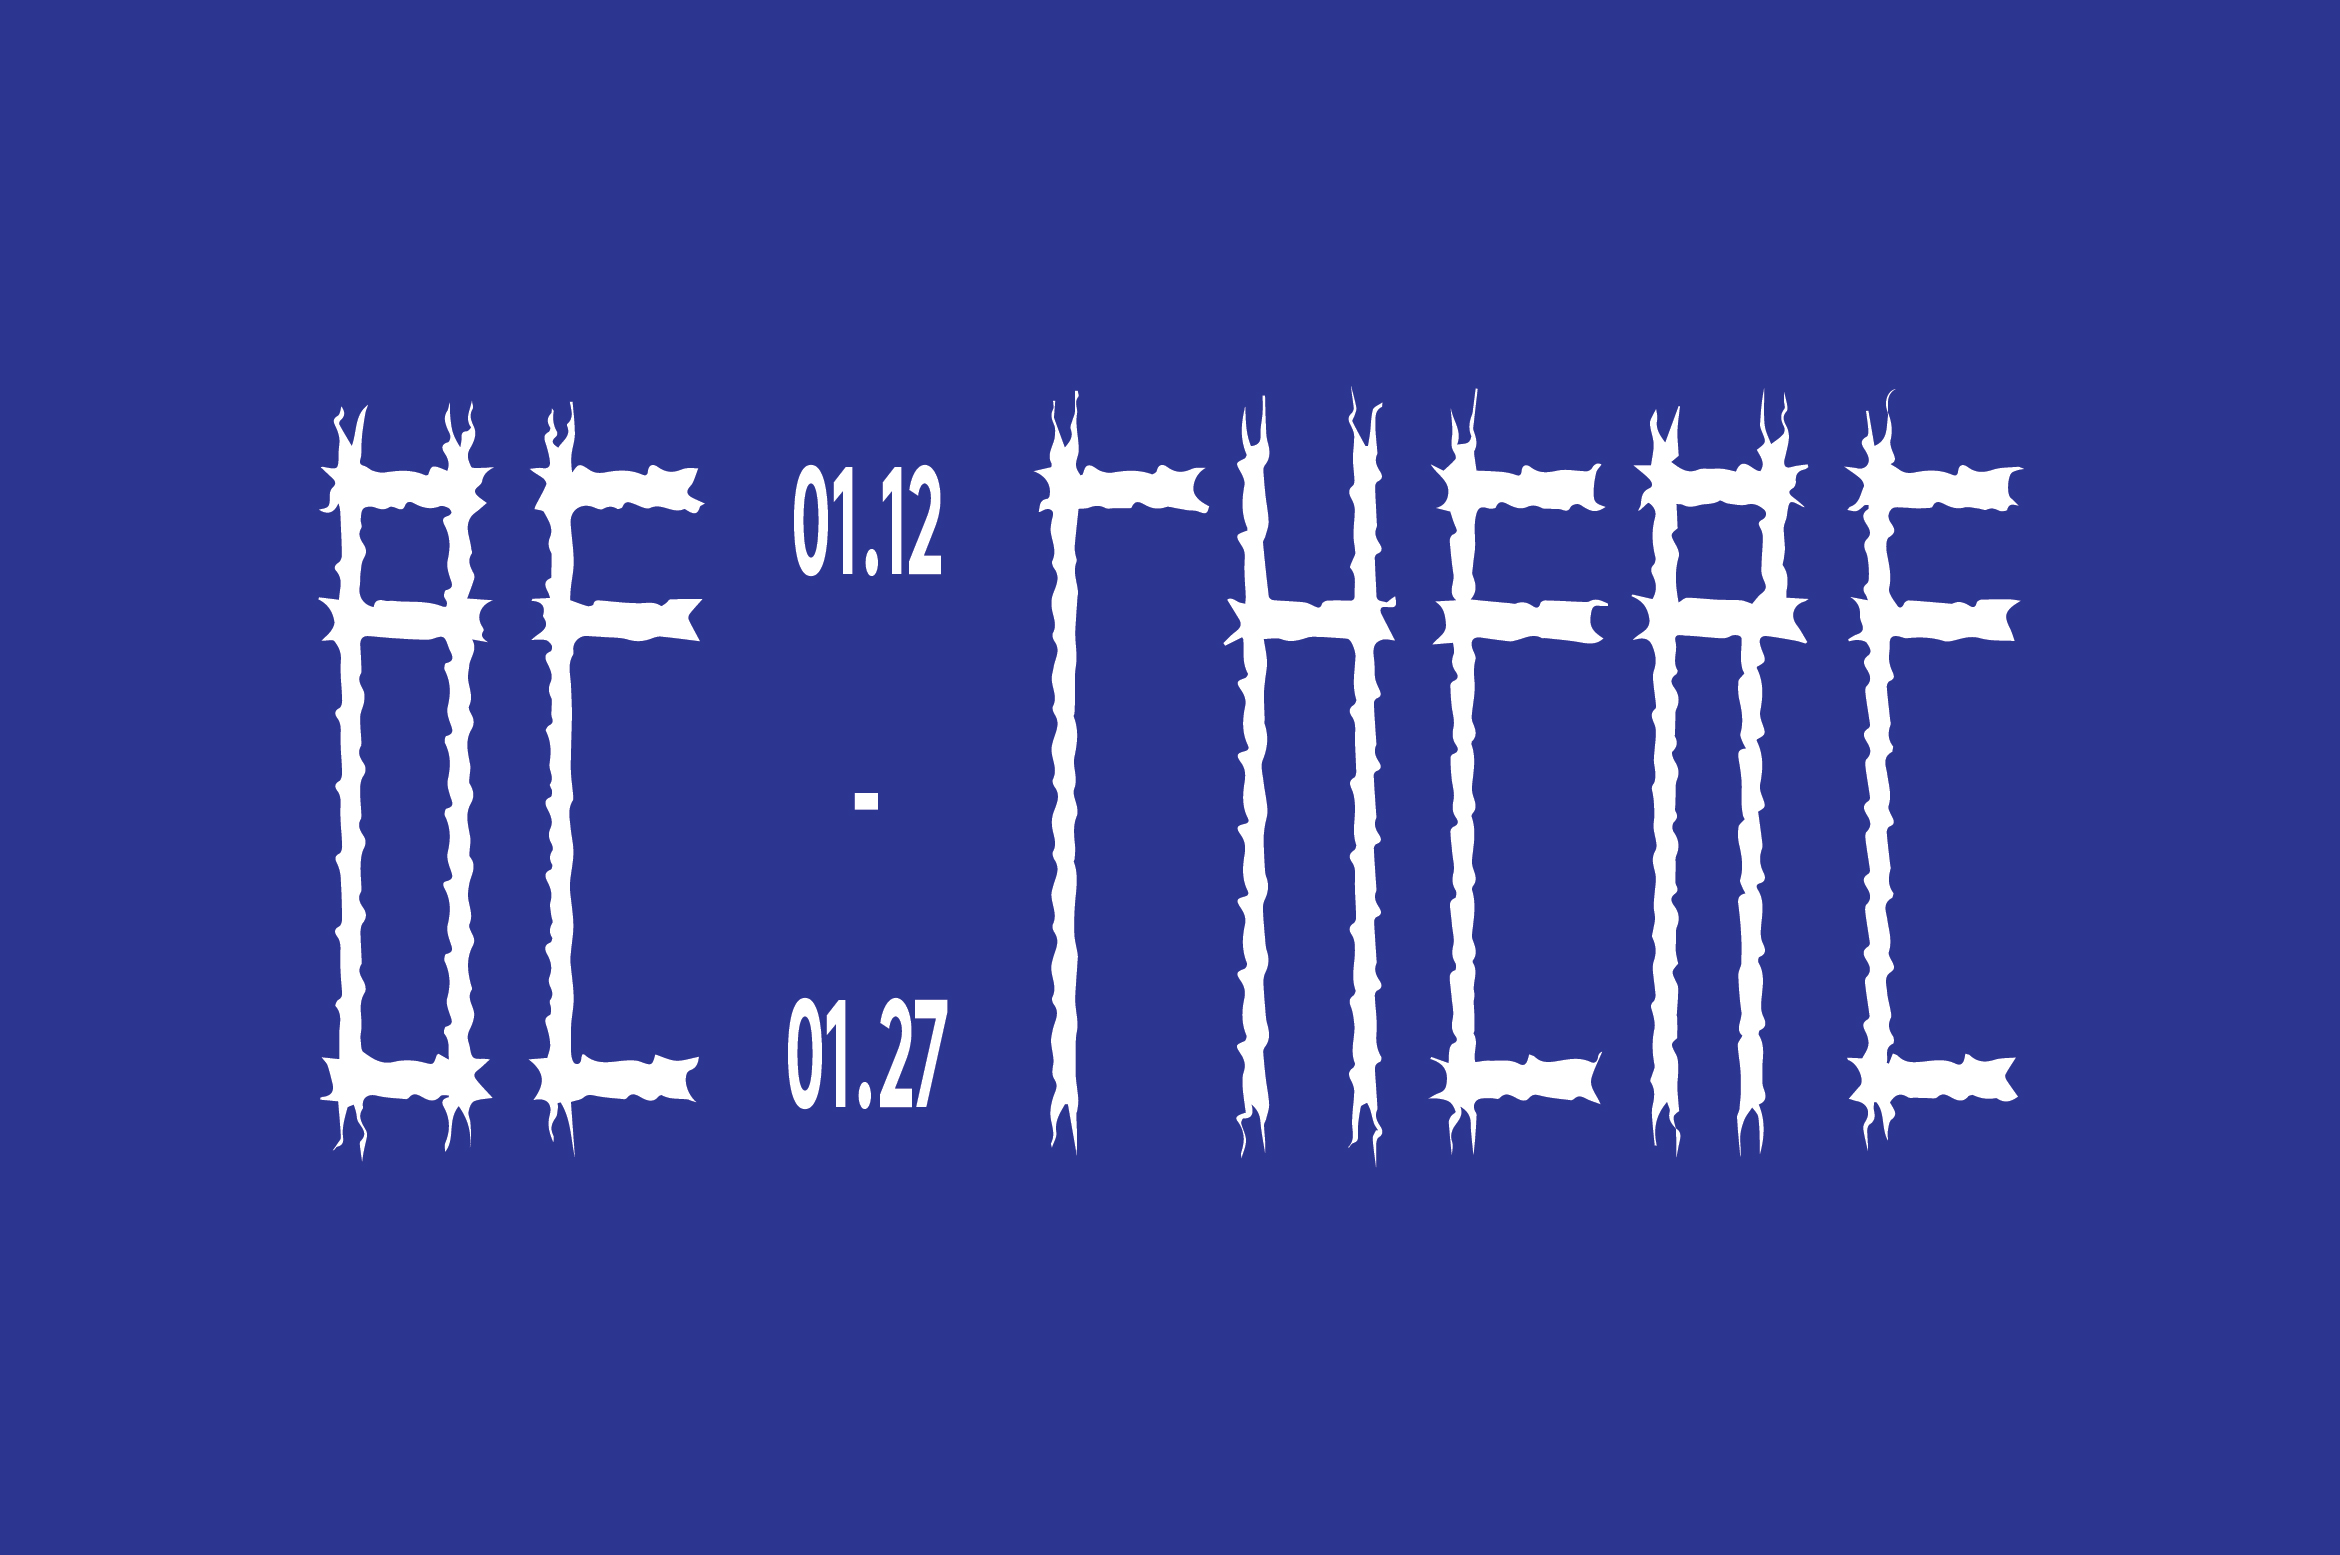 Identity and logo for BE THERE - Design Festival in Sham Shui Po by dtby_, Ron Wan, and Mildred Cheng.